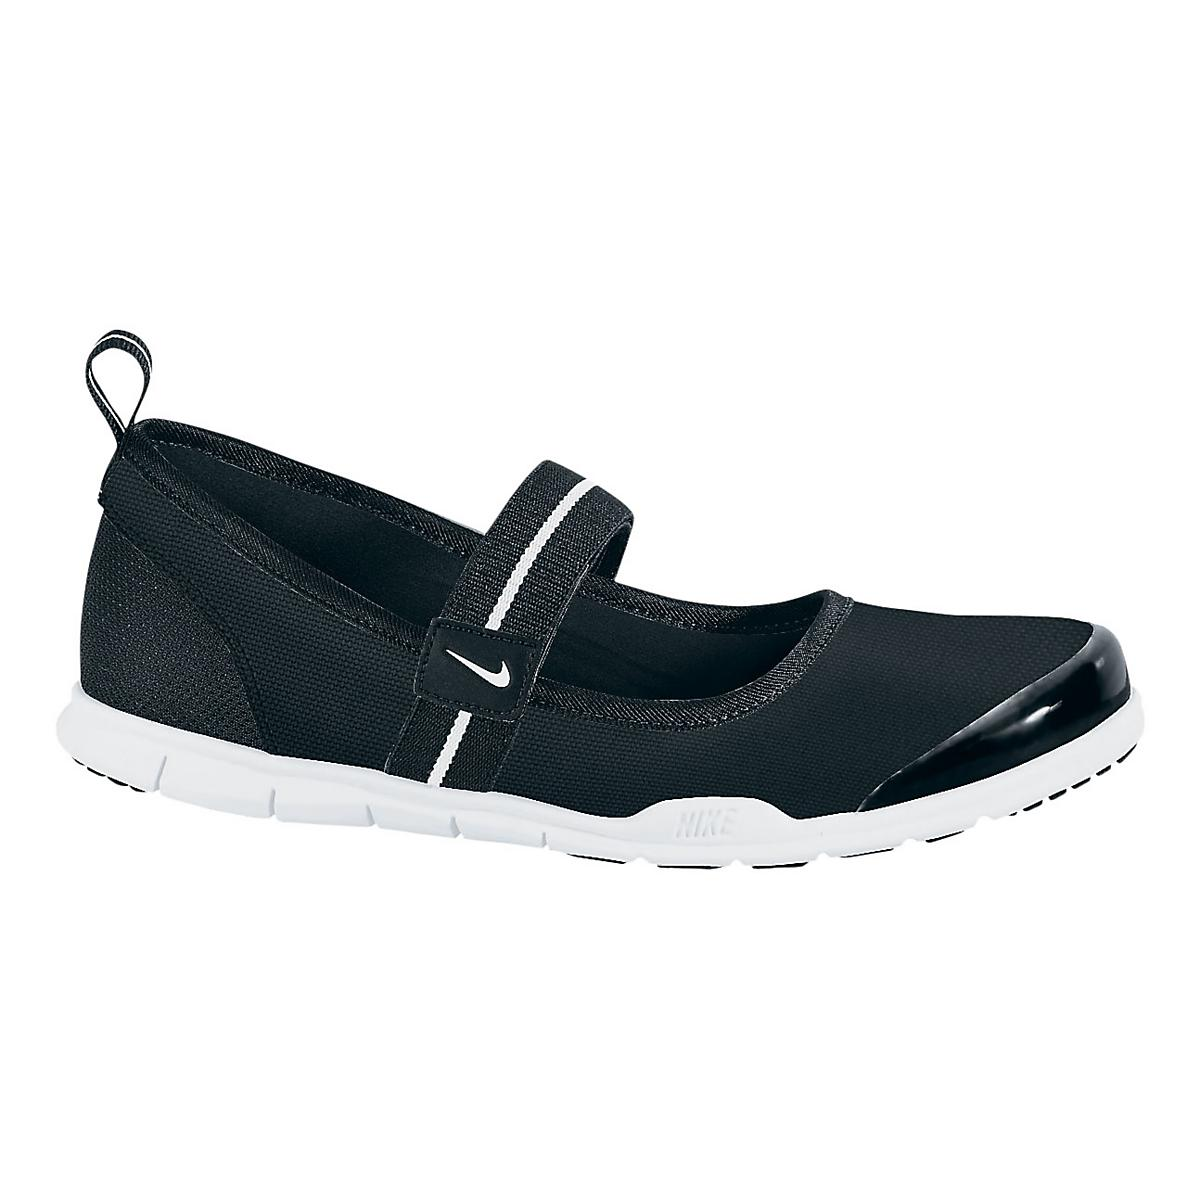 7ad99b26f4ee Womens Nike Free Mary Jane SI Casual Shoe at Road Runner Sports